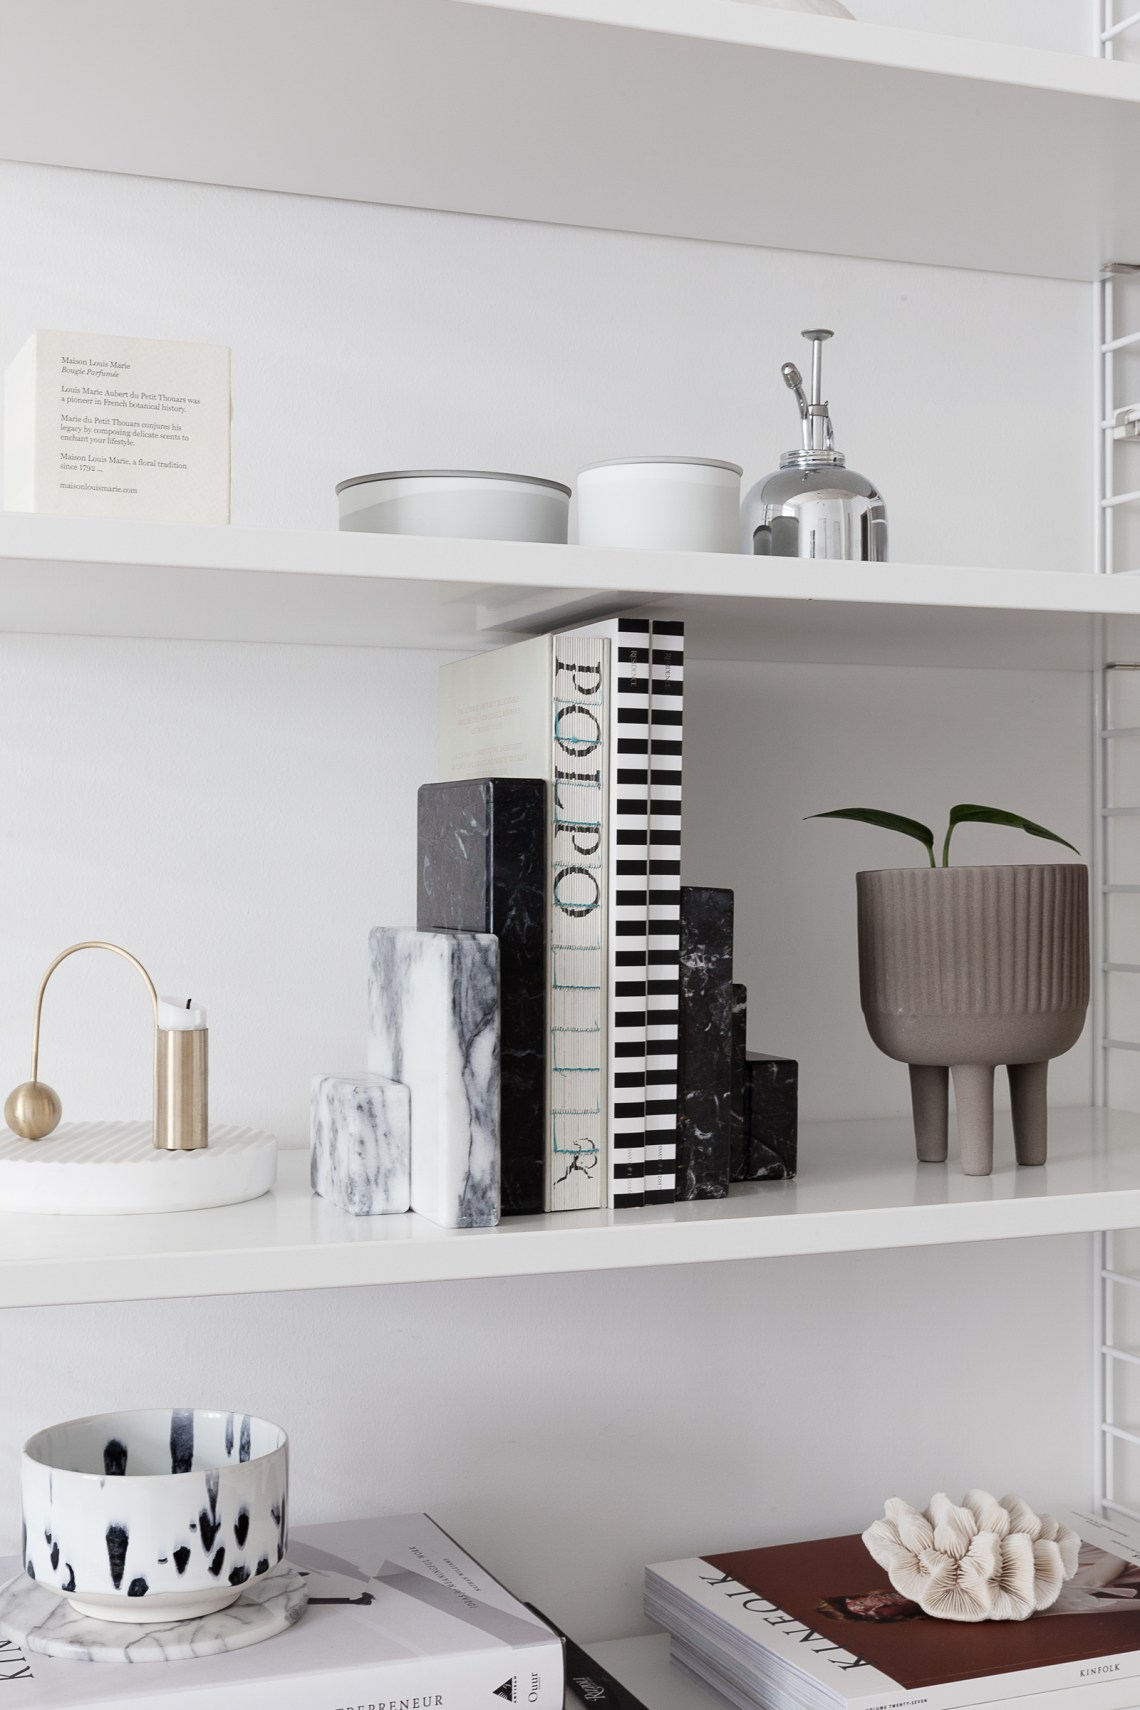 On my shelf - via Coco Lapine Design blog